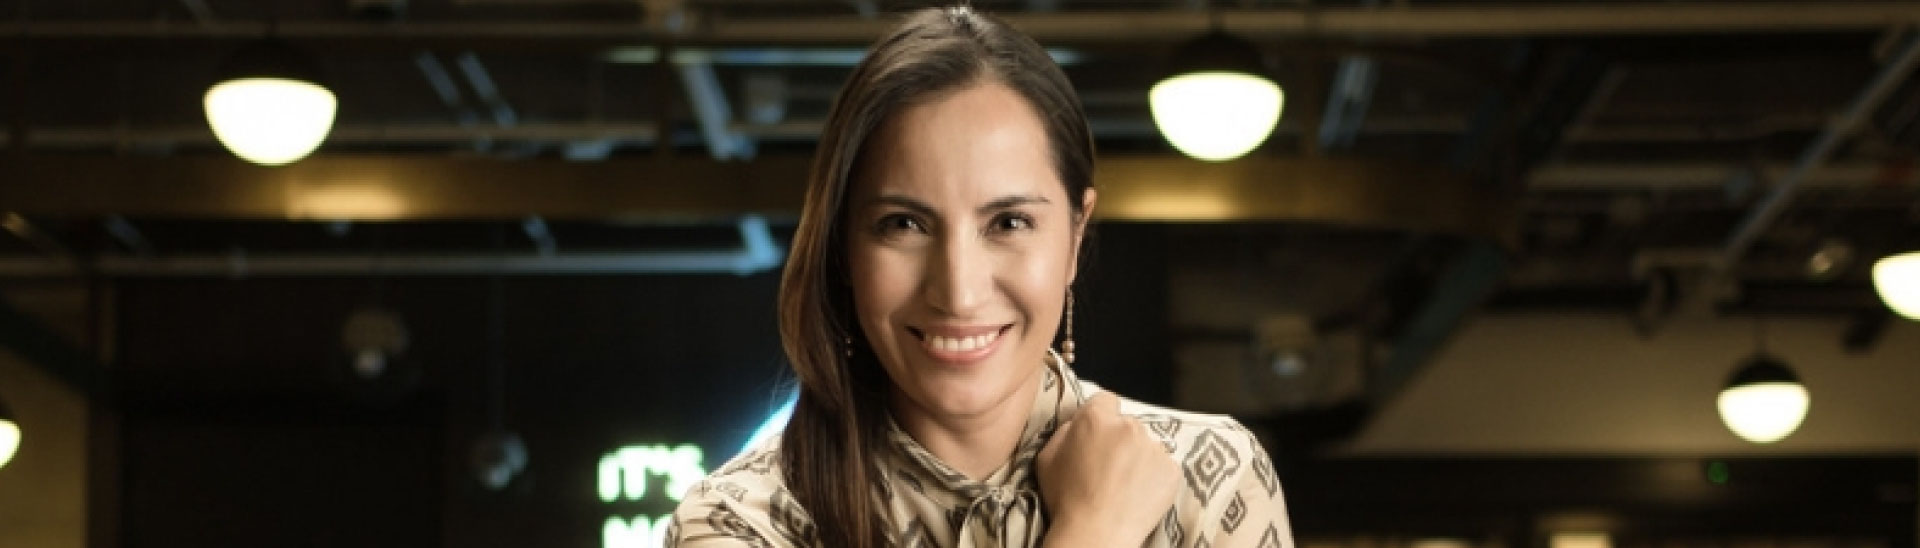 Co-fundadora de Geek Girls LatAm y docente de la U. Ean.